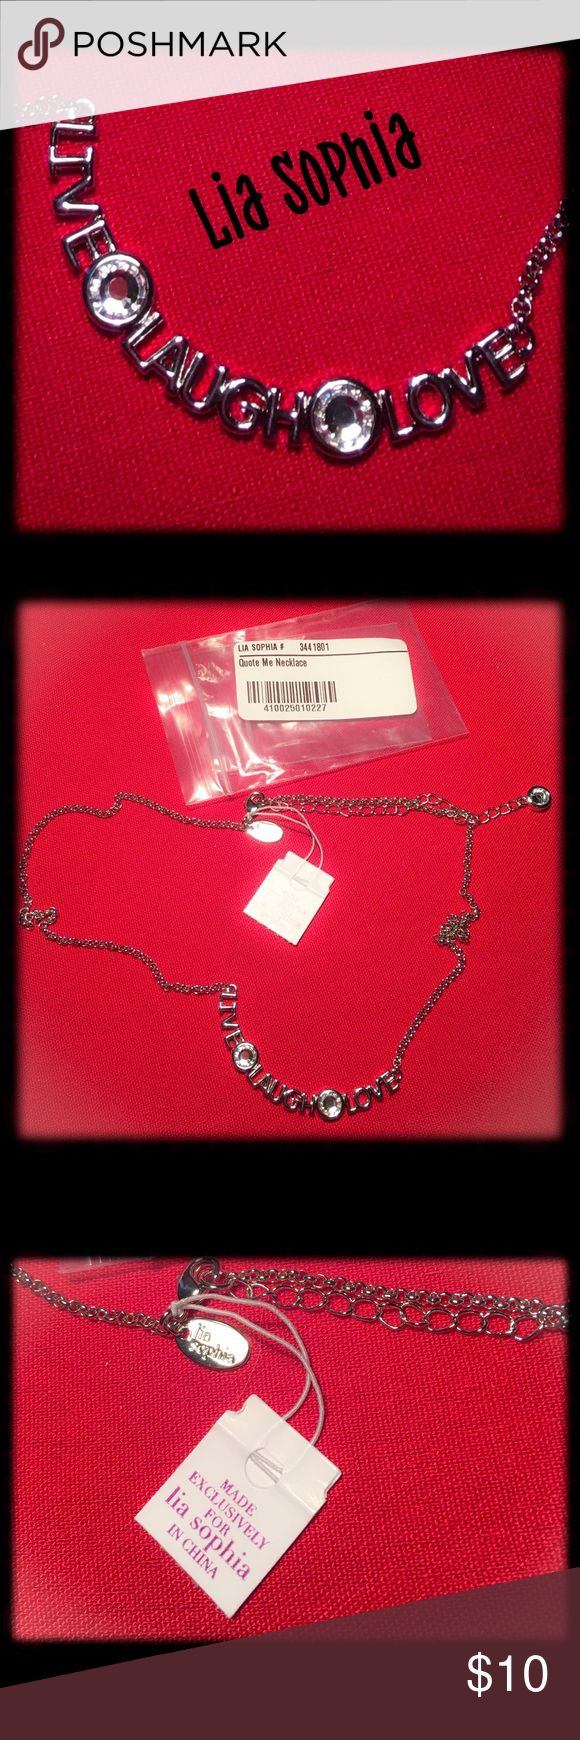 ❤️Lia Sophia❤️ Live Laugh Love Necklace Lia Sophia Live Laugh and Love Necklace on a silver chain. So cute on. Can be worn with anything! NWT Lia Sophia Jewelry Necklaces